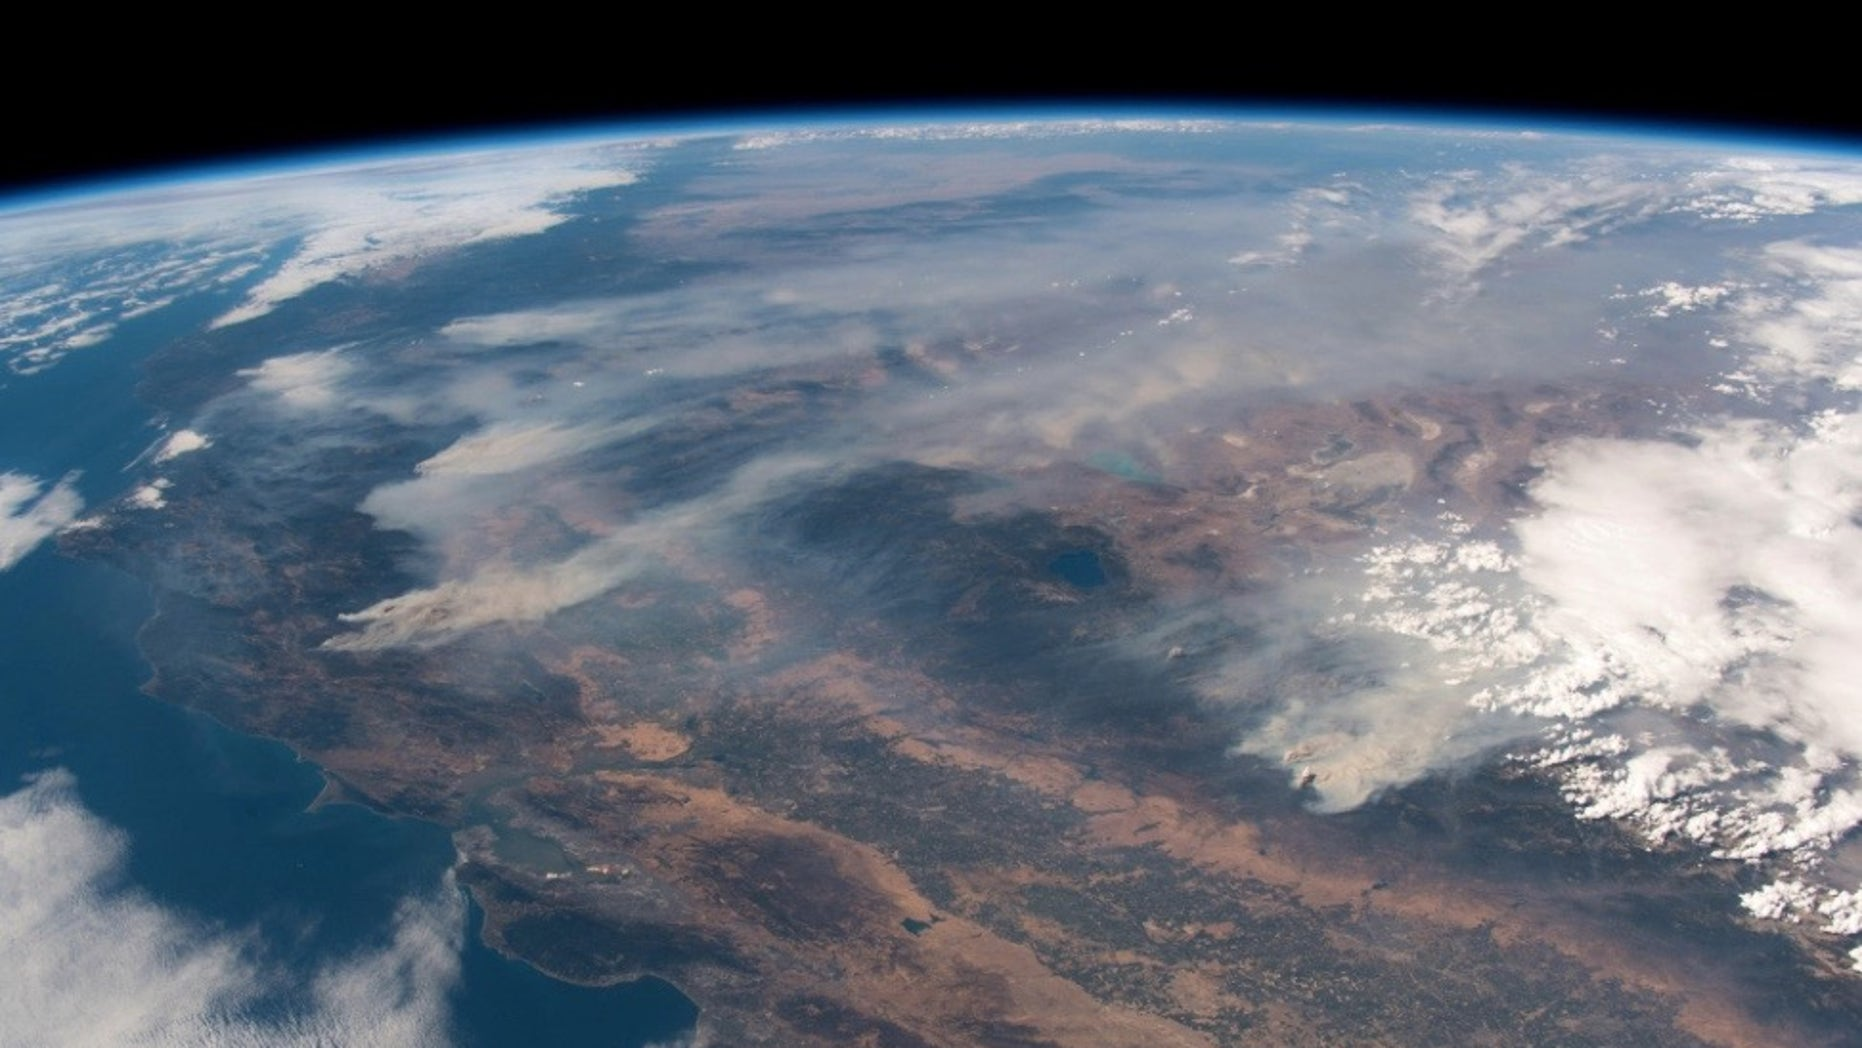 European Space Agency astronaut Alexander Gerst posted this view of the California wildfires, as seen from the International Space Station (ISS), on Twitter on Aug. 3, 2018.